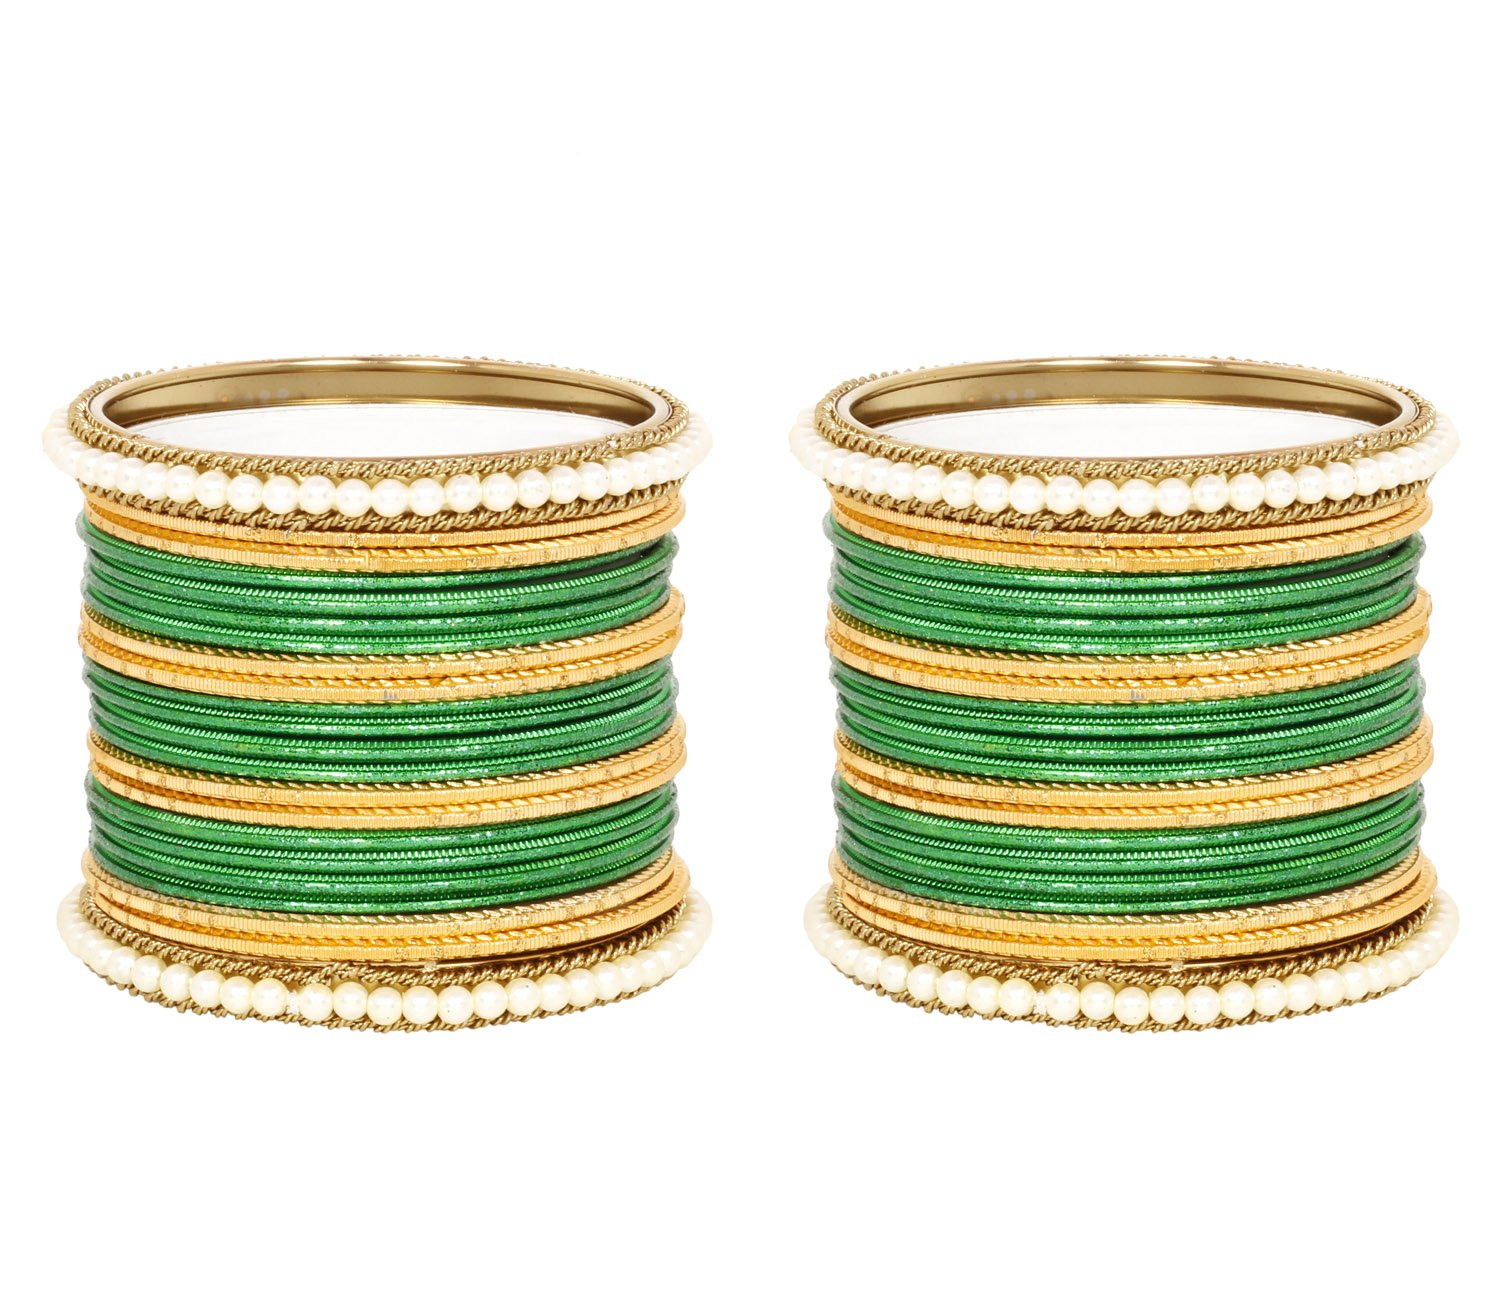 Ratna Attractive Green color Punjabi bangle set women wedding wear Special Ethnic bangles jewellery (2.4)